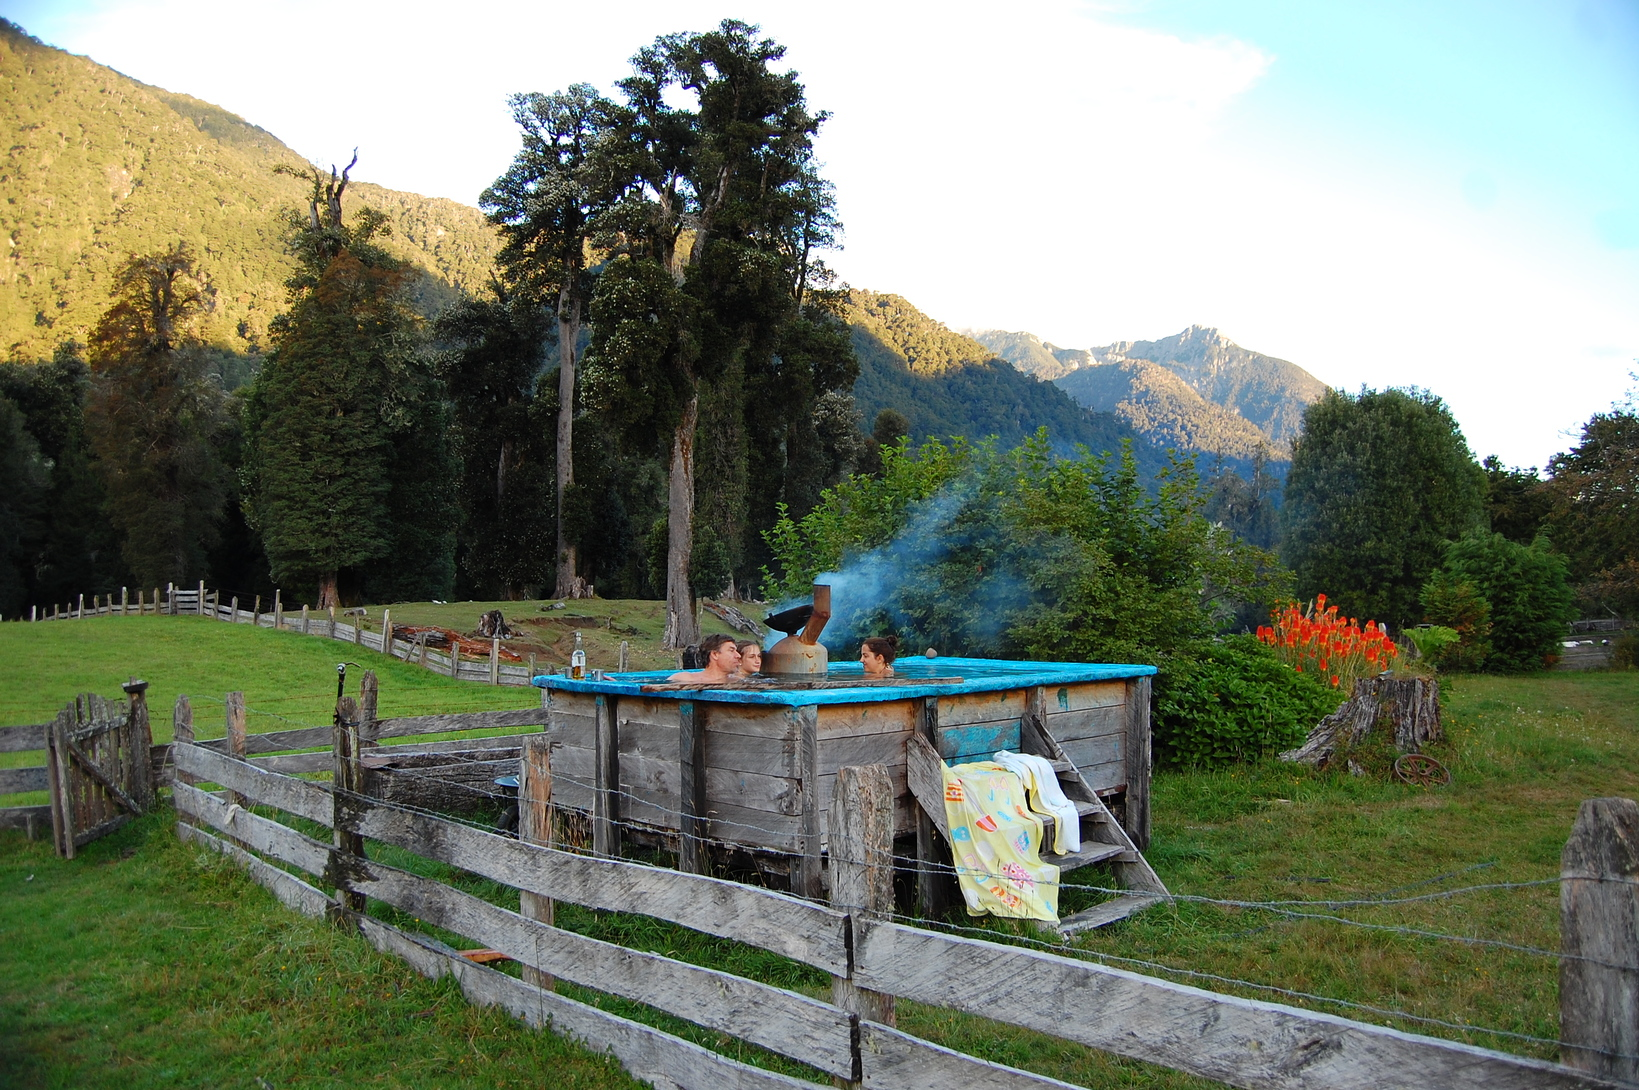 A hot tub in the middle of the farm